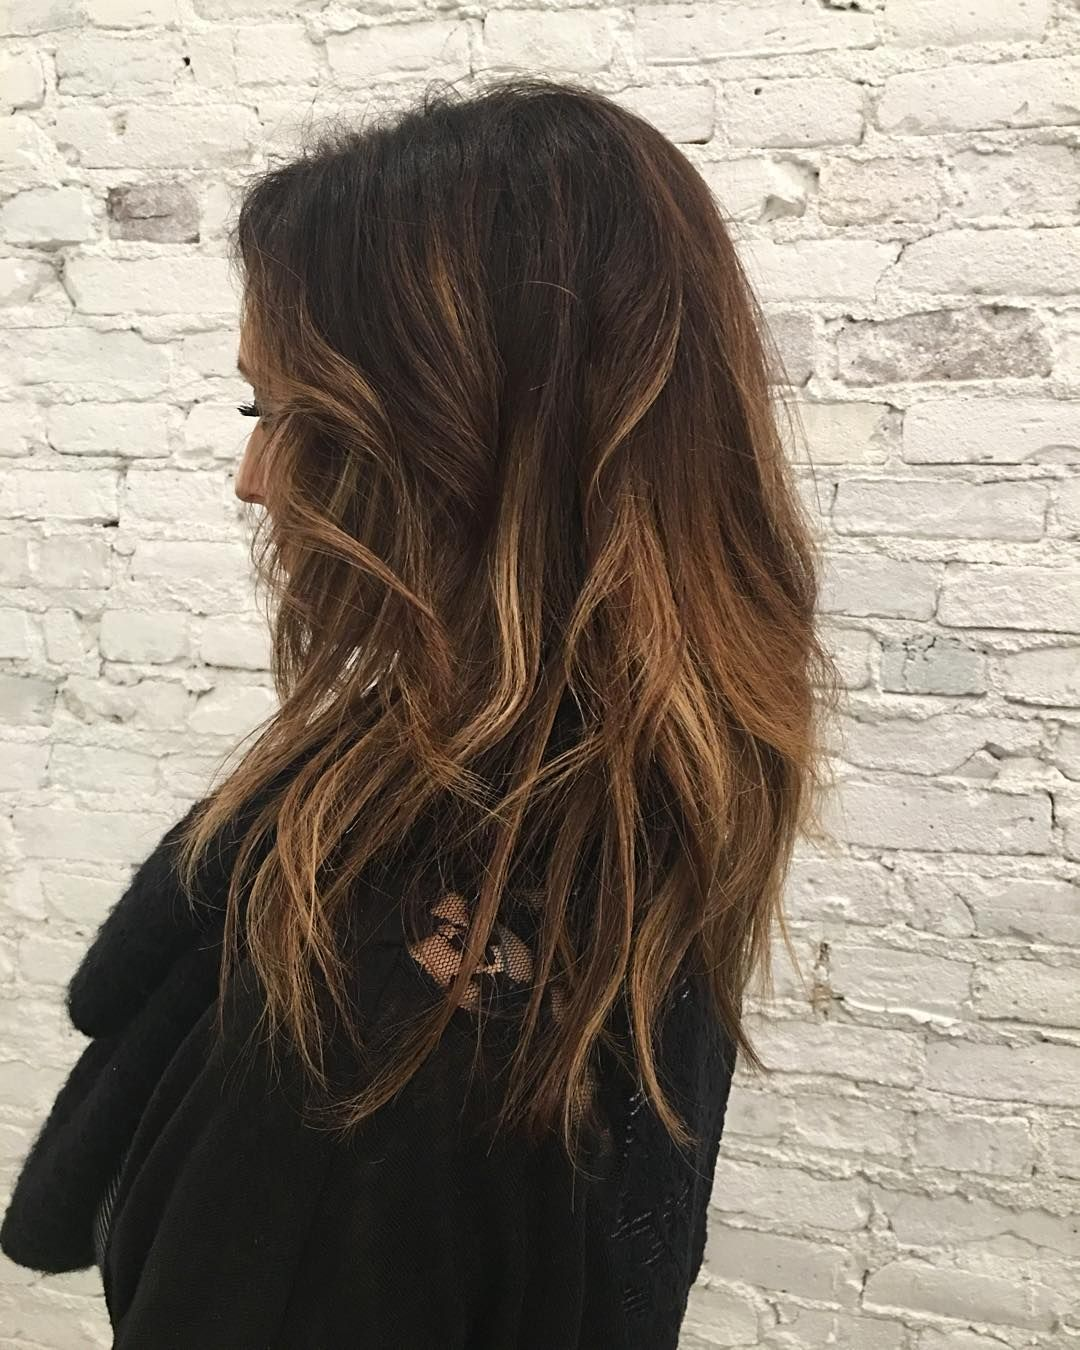 If you haven't experienced a Brazilian blowout you don't know what you're missing. I haven't been able to stop playing with my hair all day. I don't even remember the last time my hair looked and felt this amazing. #brazilianblowout #hair #hairstylist #chicagosalon #balayage #luxe #luxelife #luxegirl #luxesalonsycamore #luxehair by that1polishgirl http://shearindulgencespansalon.com/